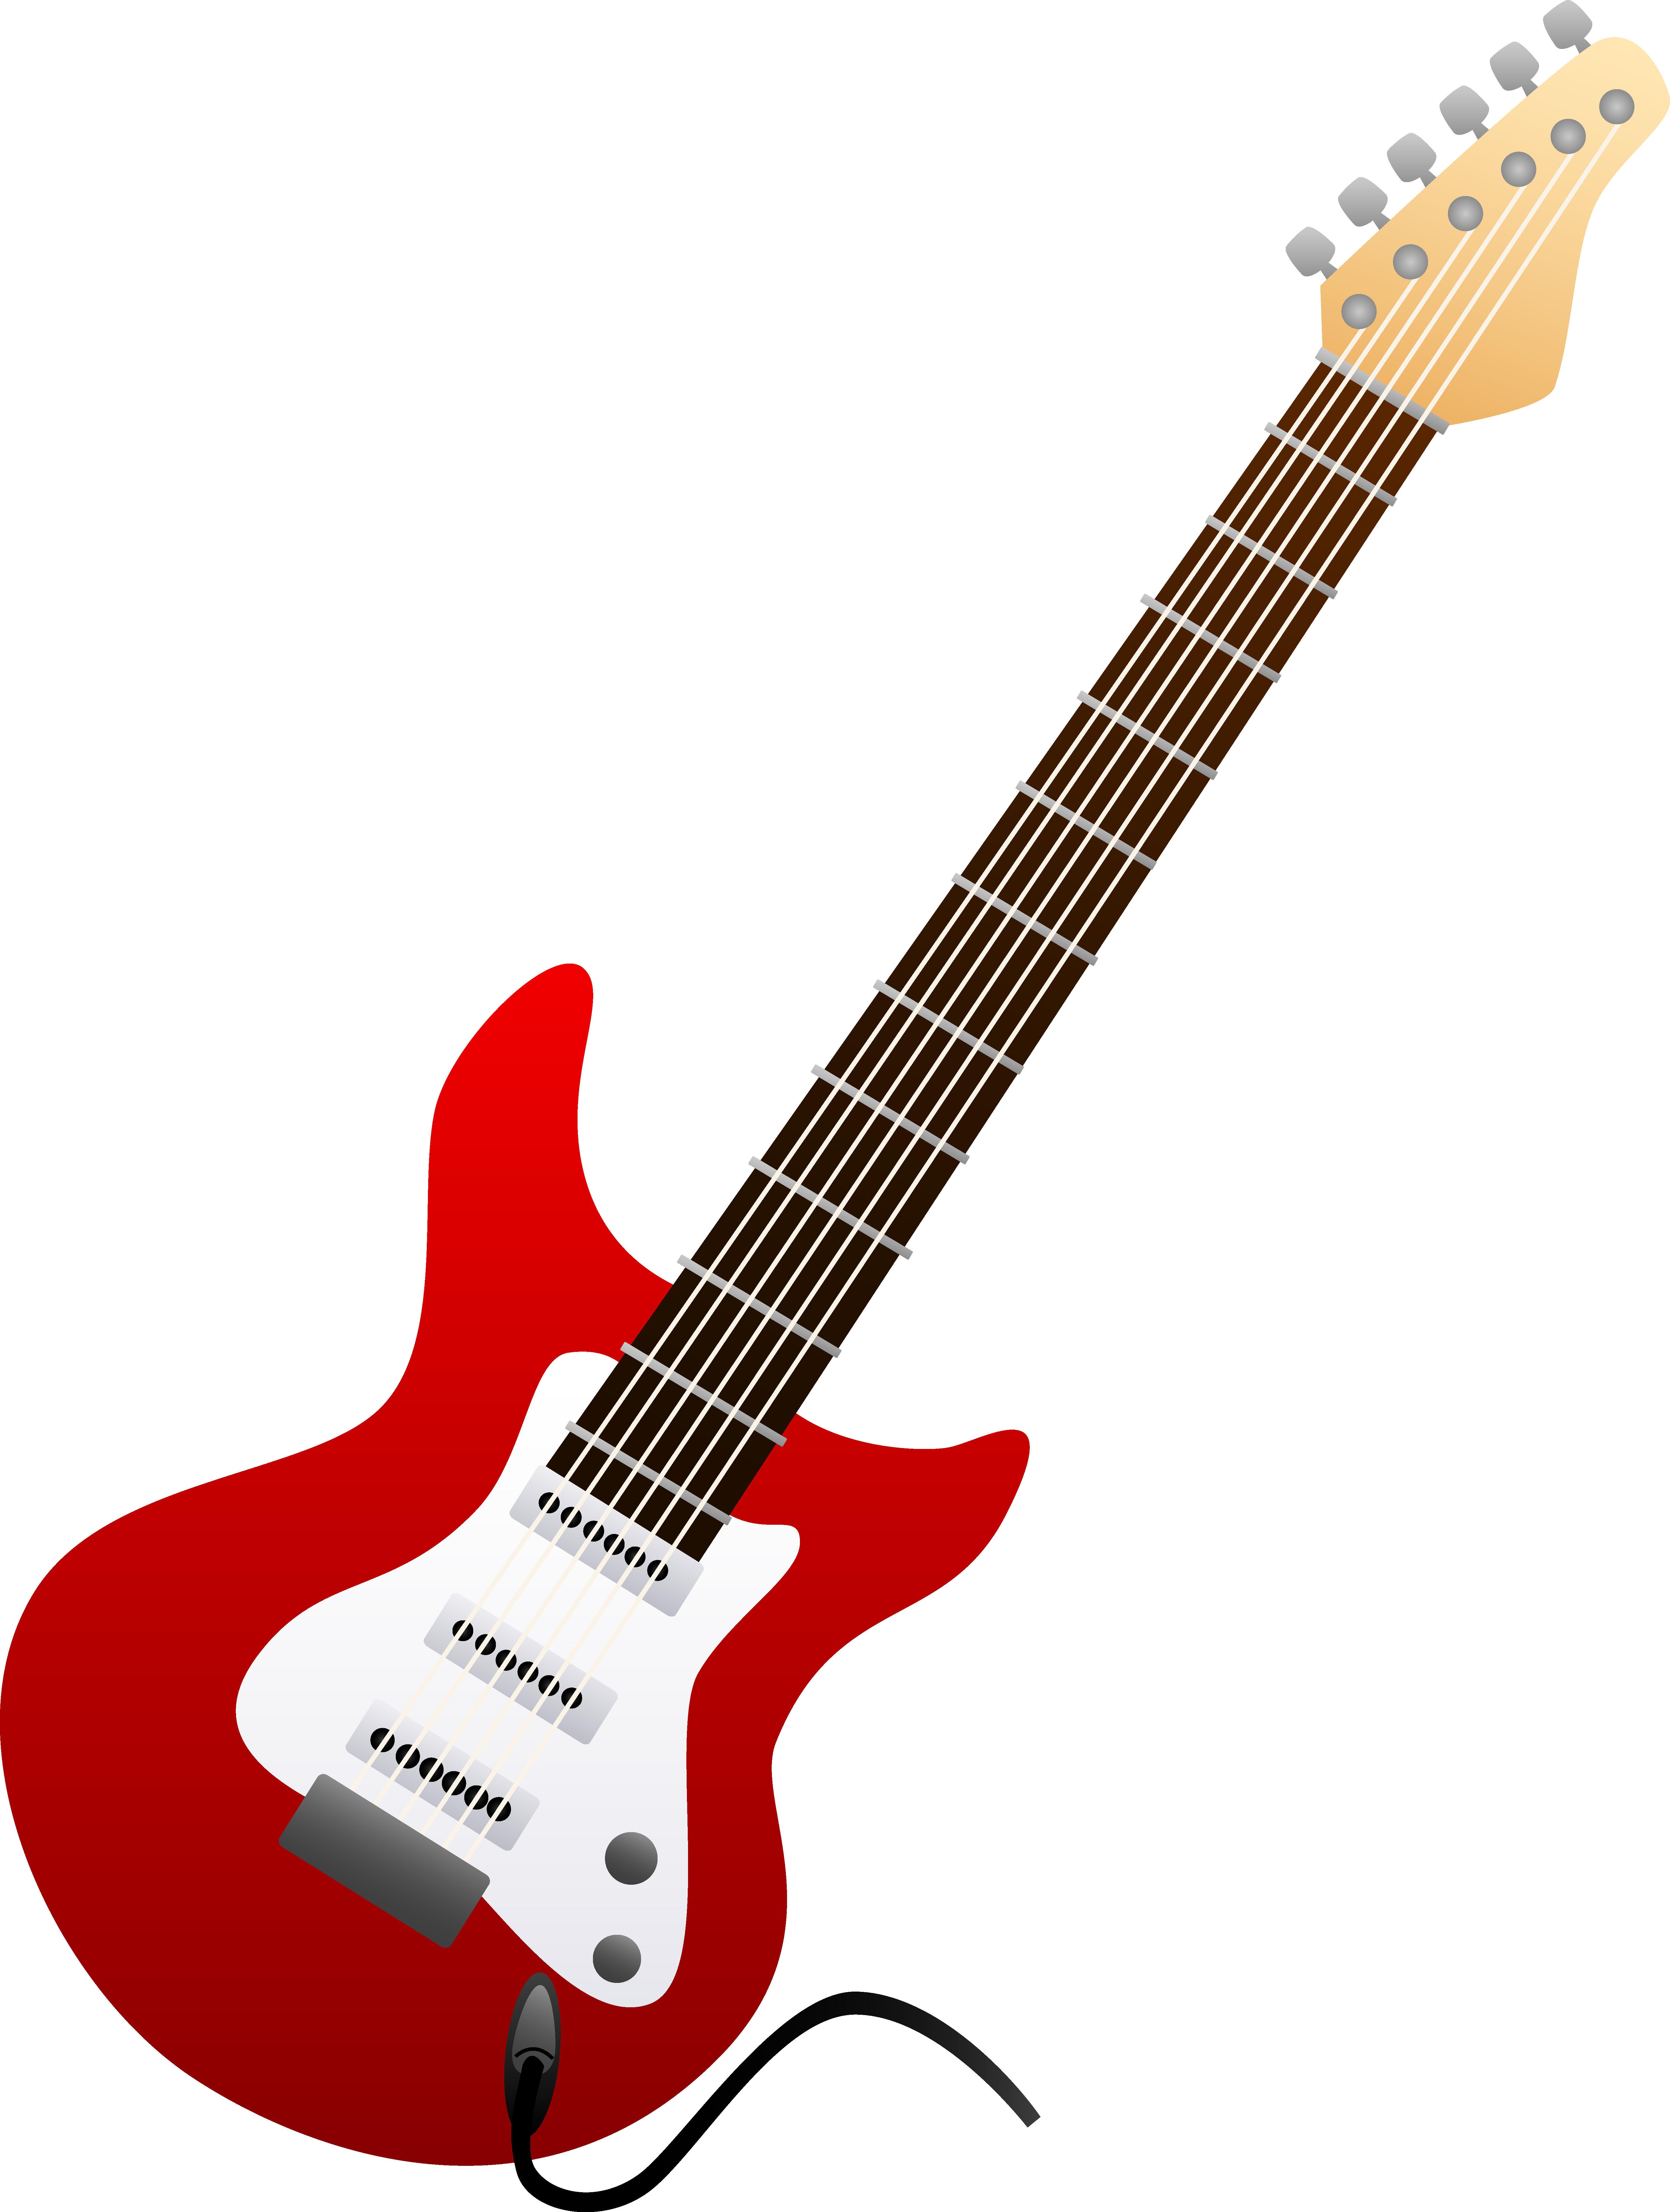 Red electric design free. Woman clipart guitar clip art royalty free